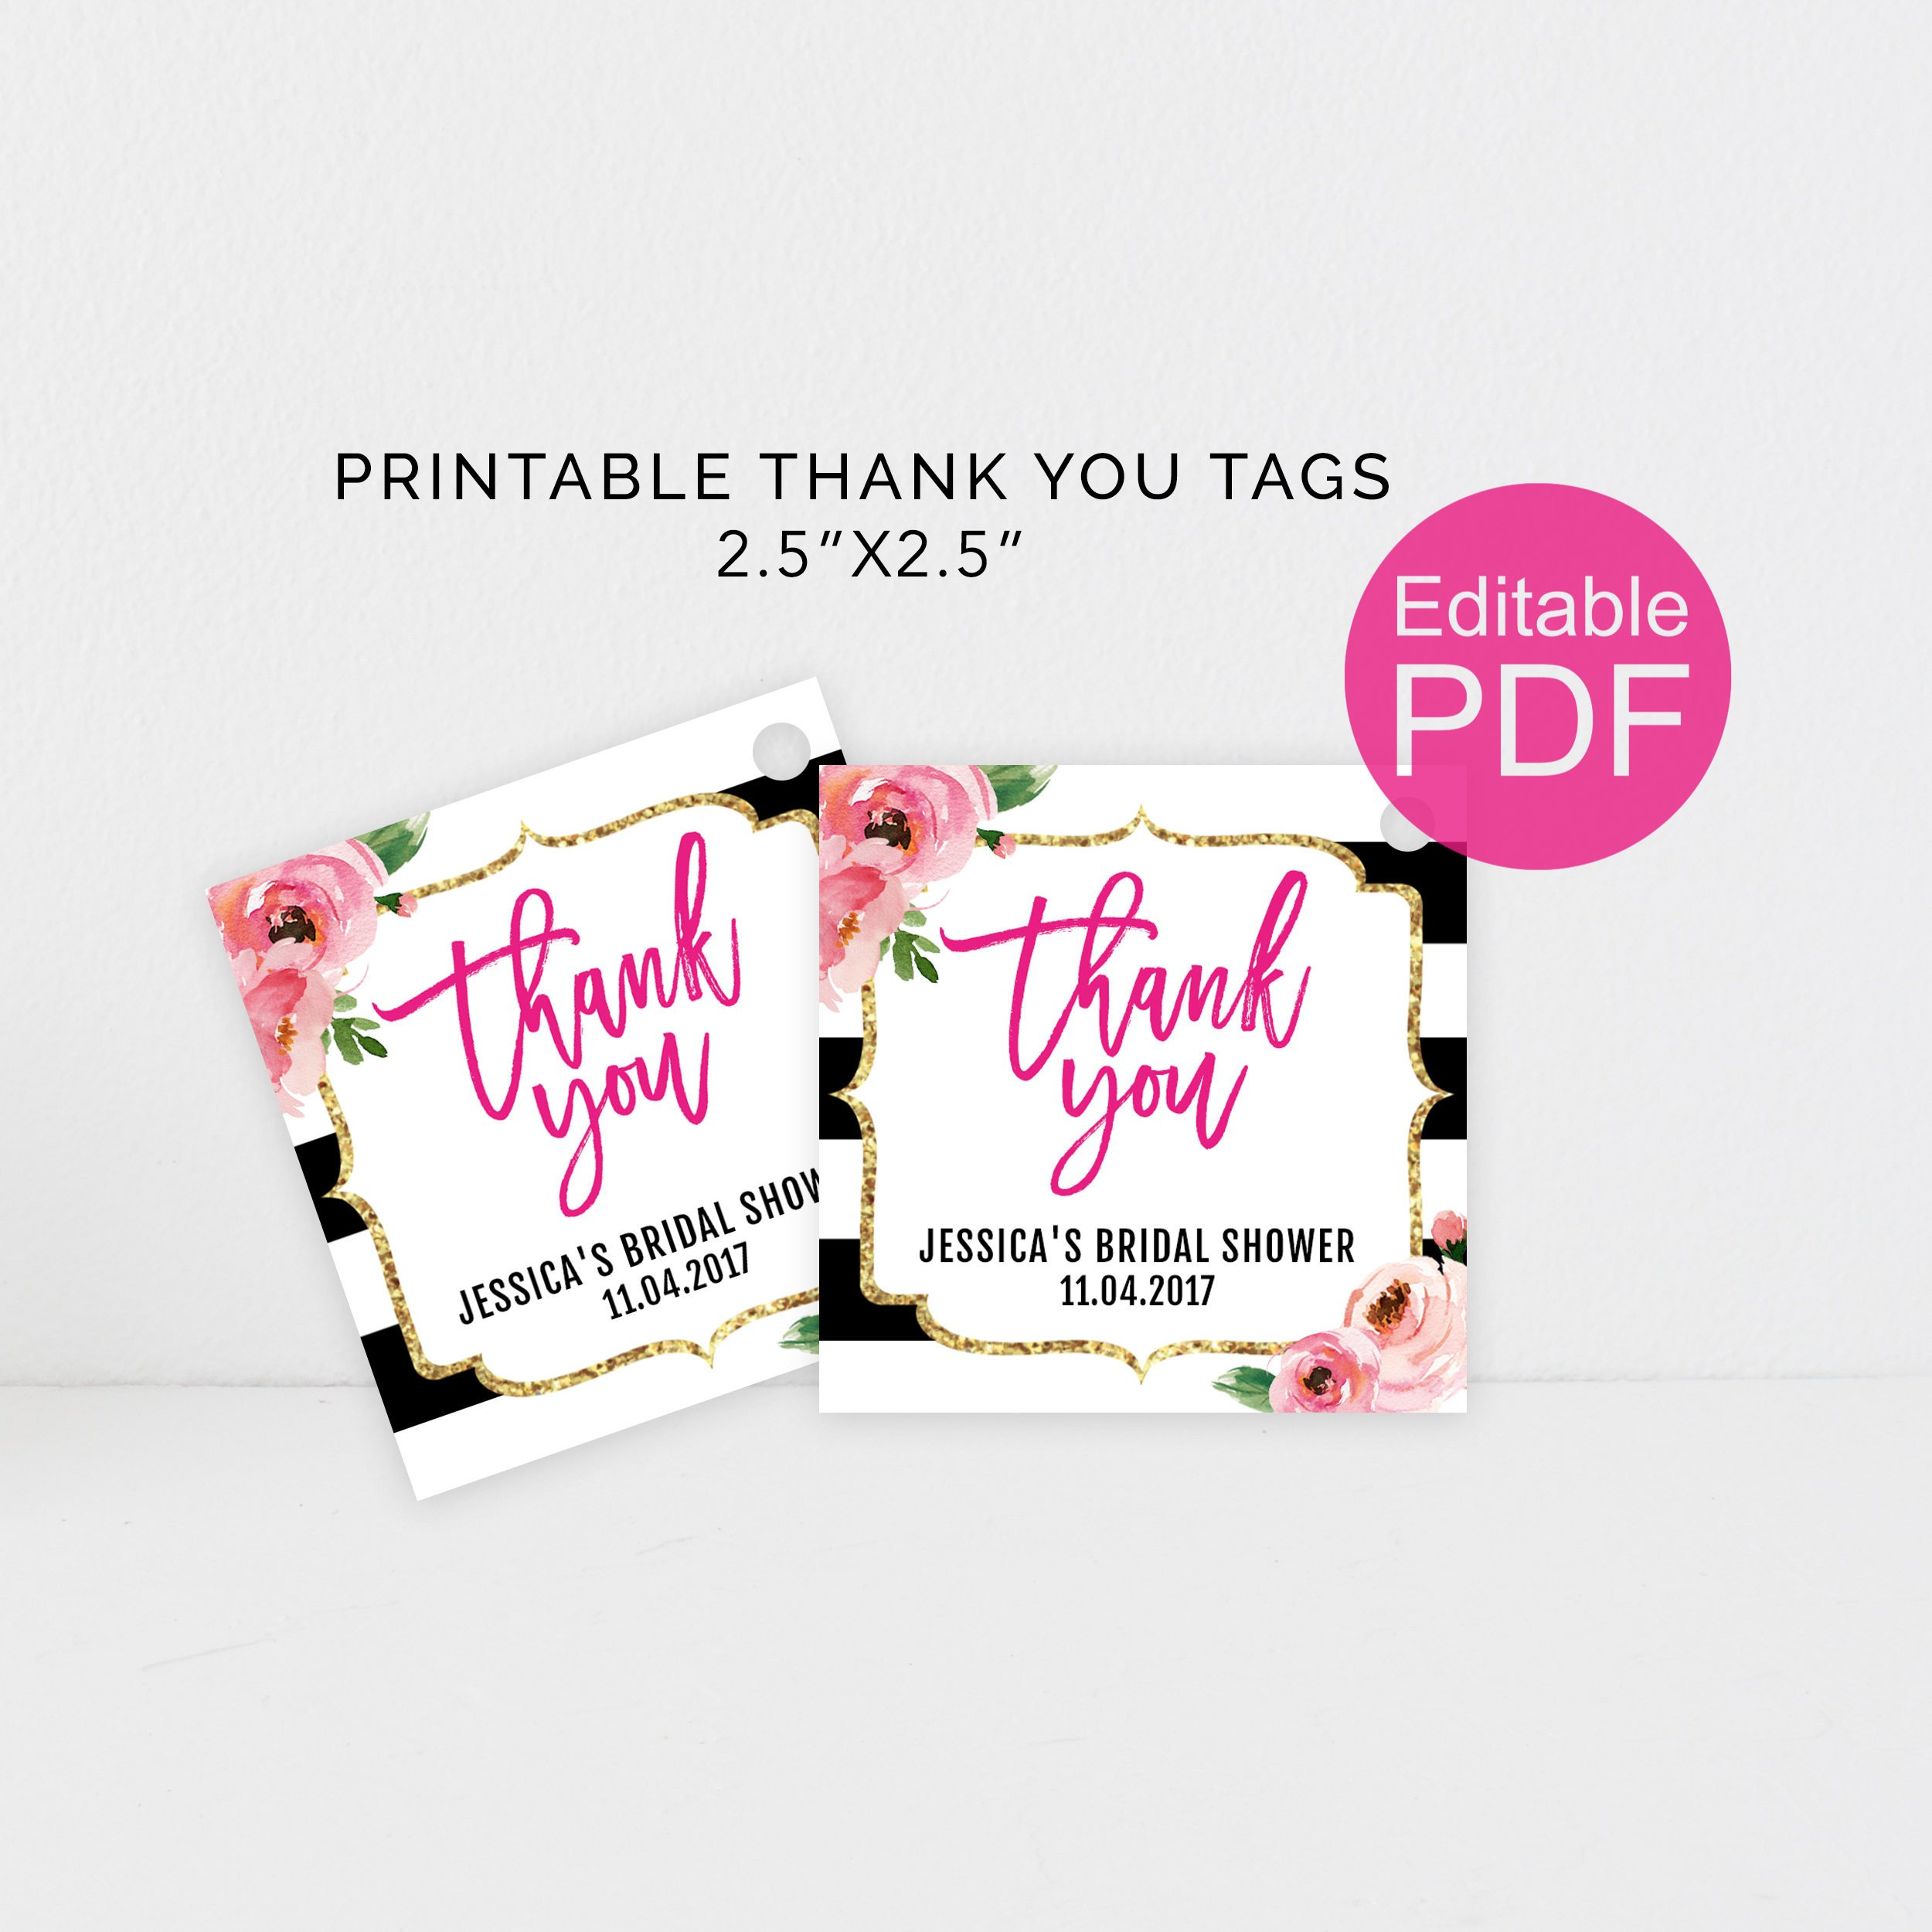 Thank You Printable Tags Kate Thank You Tags Template Diy Floral Thank You Tag Kate